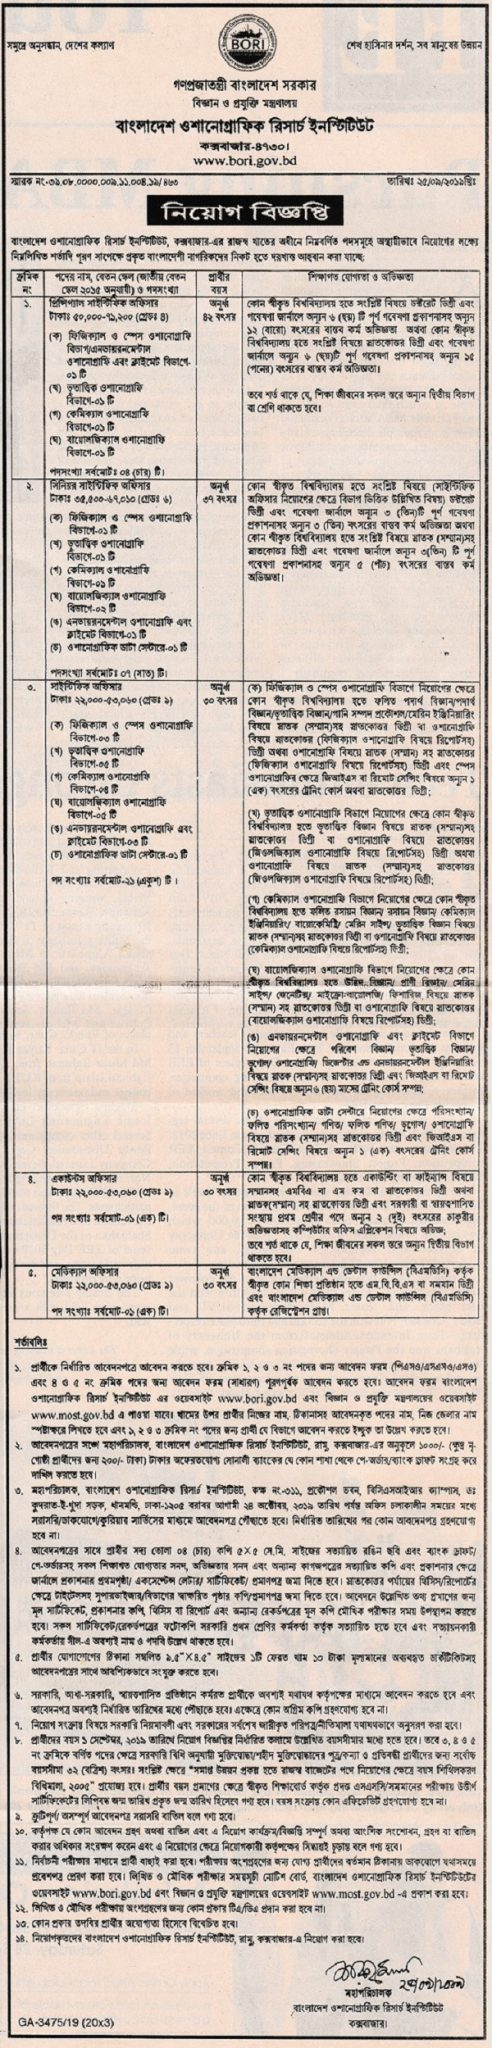 Bangladesh Oceanographic Research Institute (BORI) Job Circular 2019